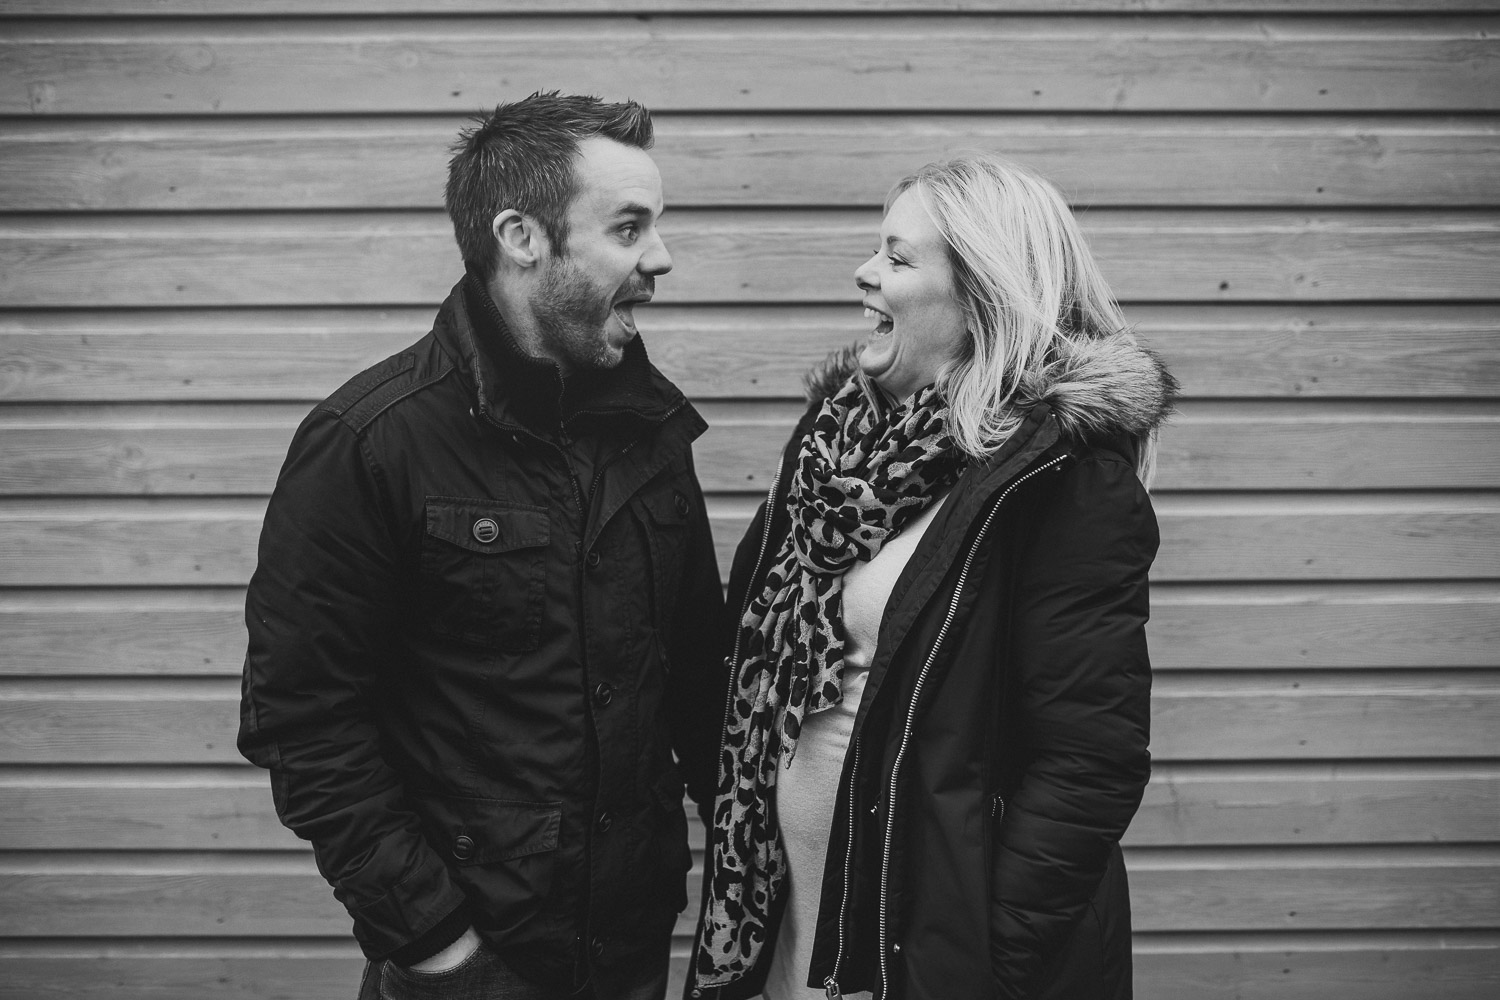 East-Quay-Whistable-Engagement-13.jpg